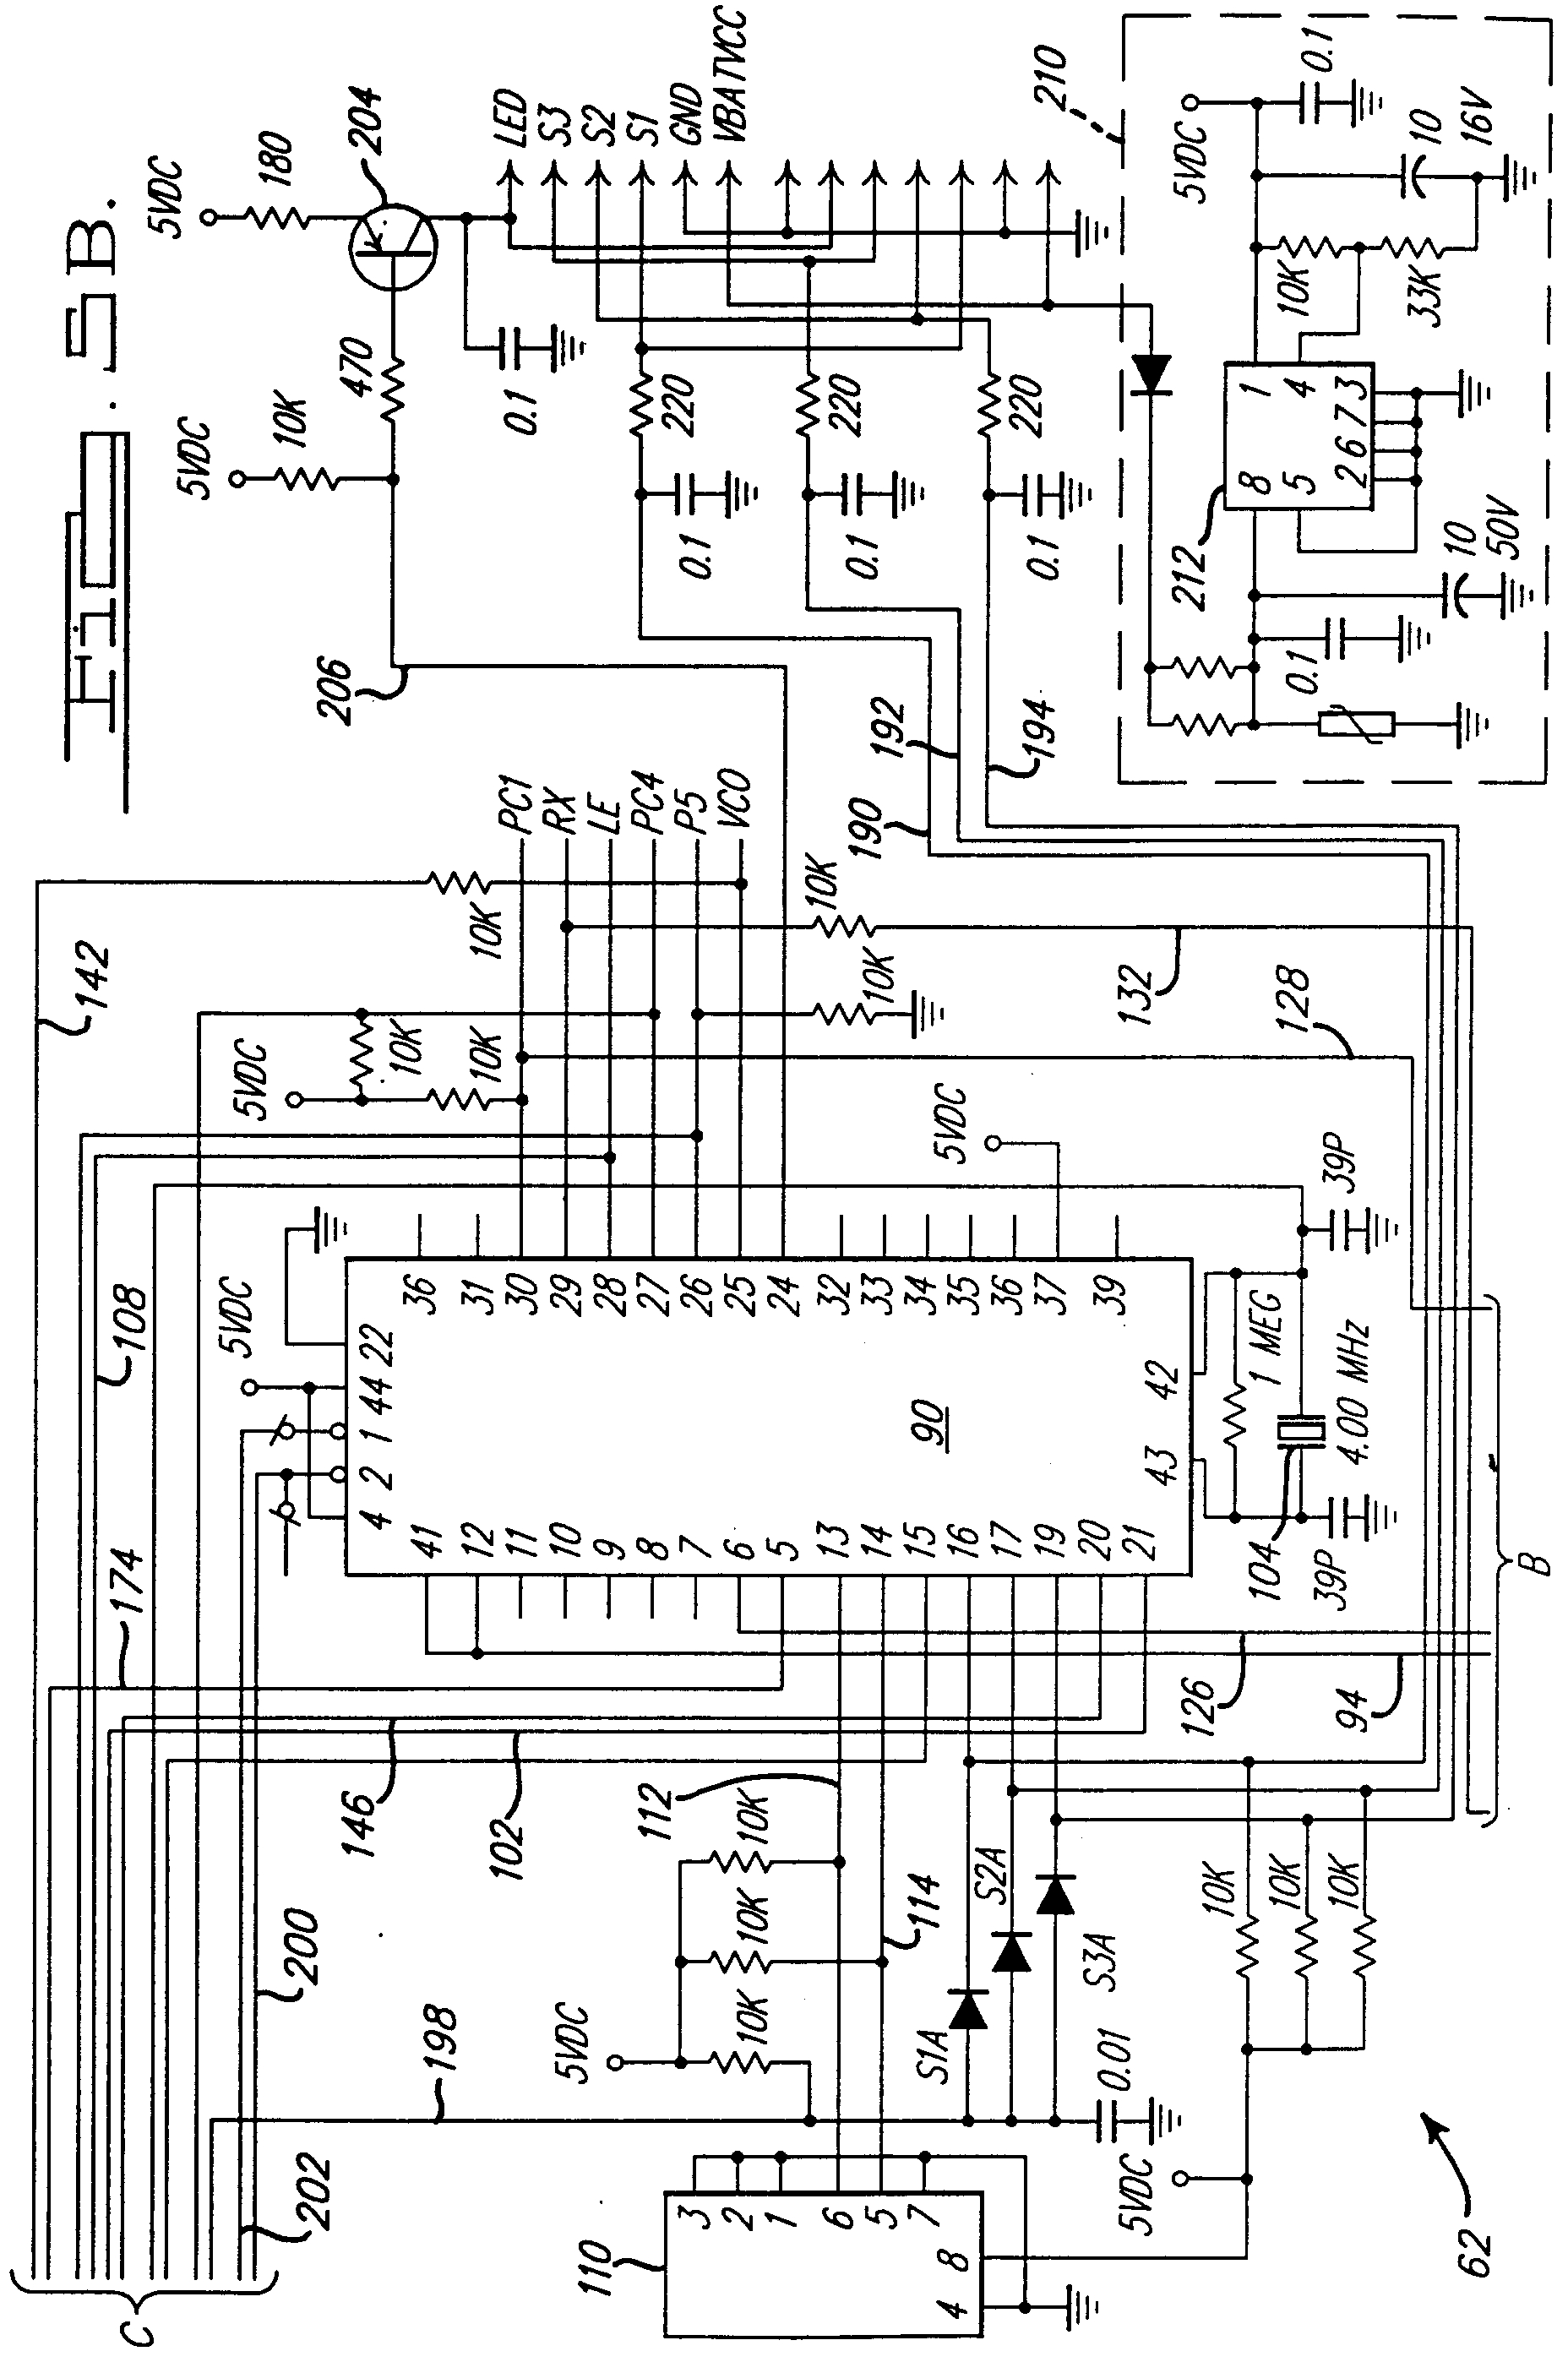 Circuit Board Wiring Diagram Auto Electrical To Install Icm286 In A Gds80904bxbc Gas Furnace Related With